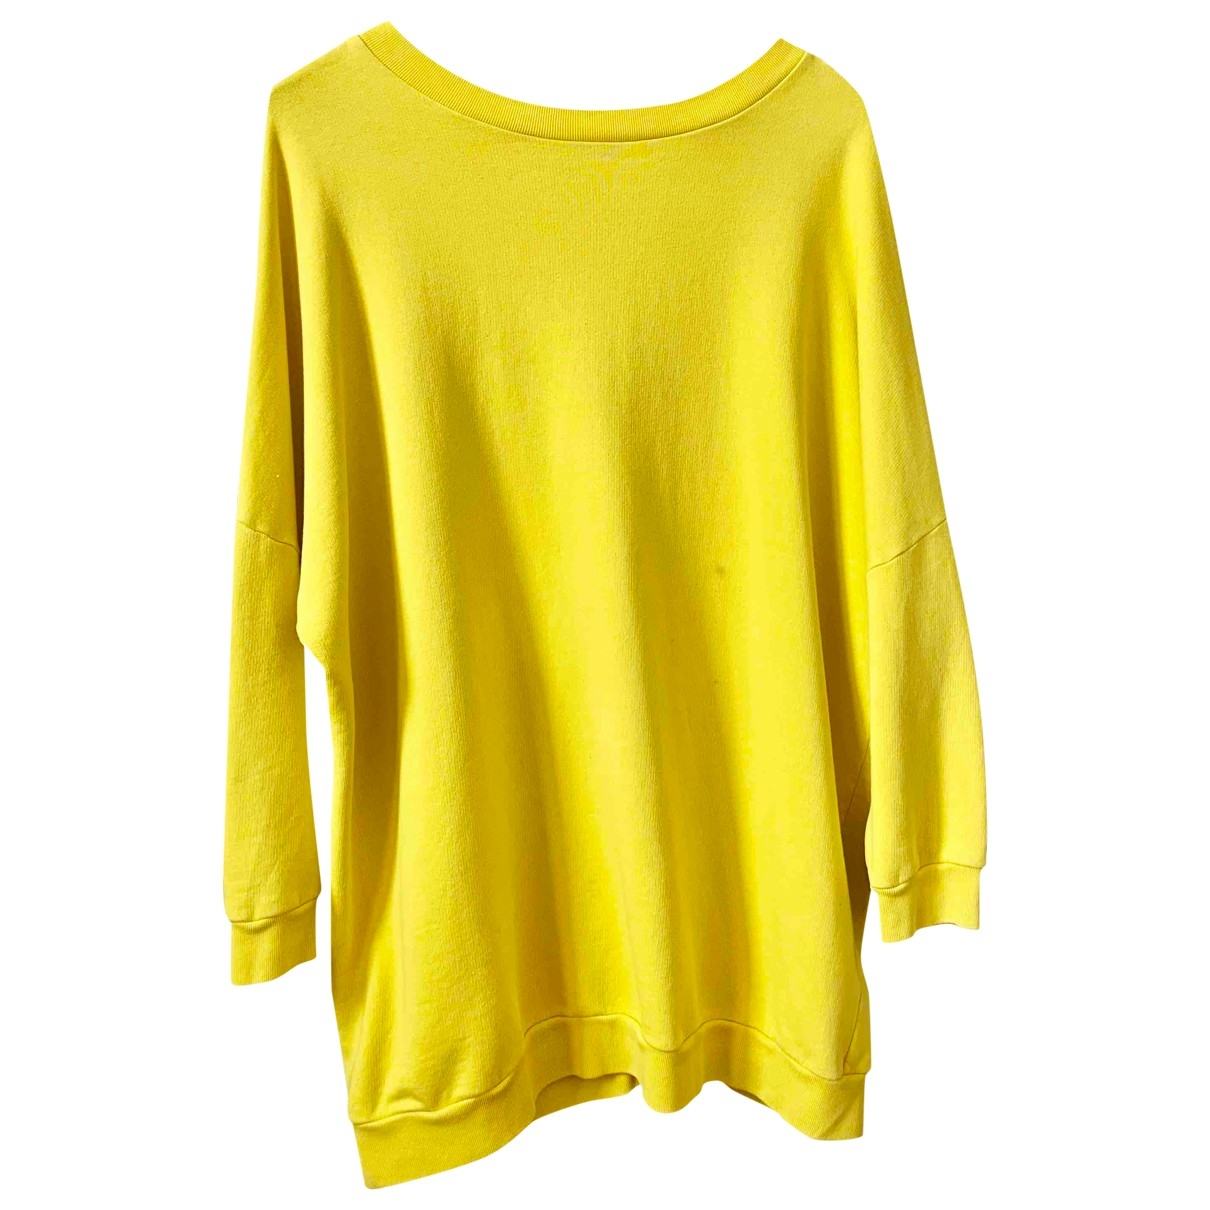 Department 5 \N Yellow Cotton Knitwear for Women 40 FR